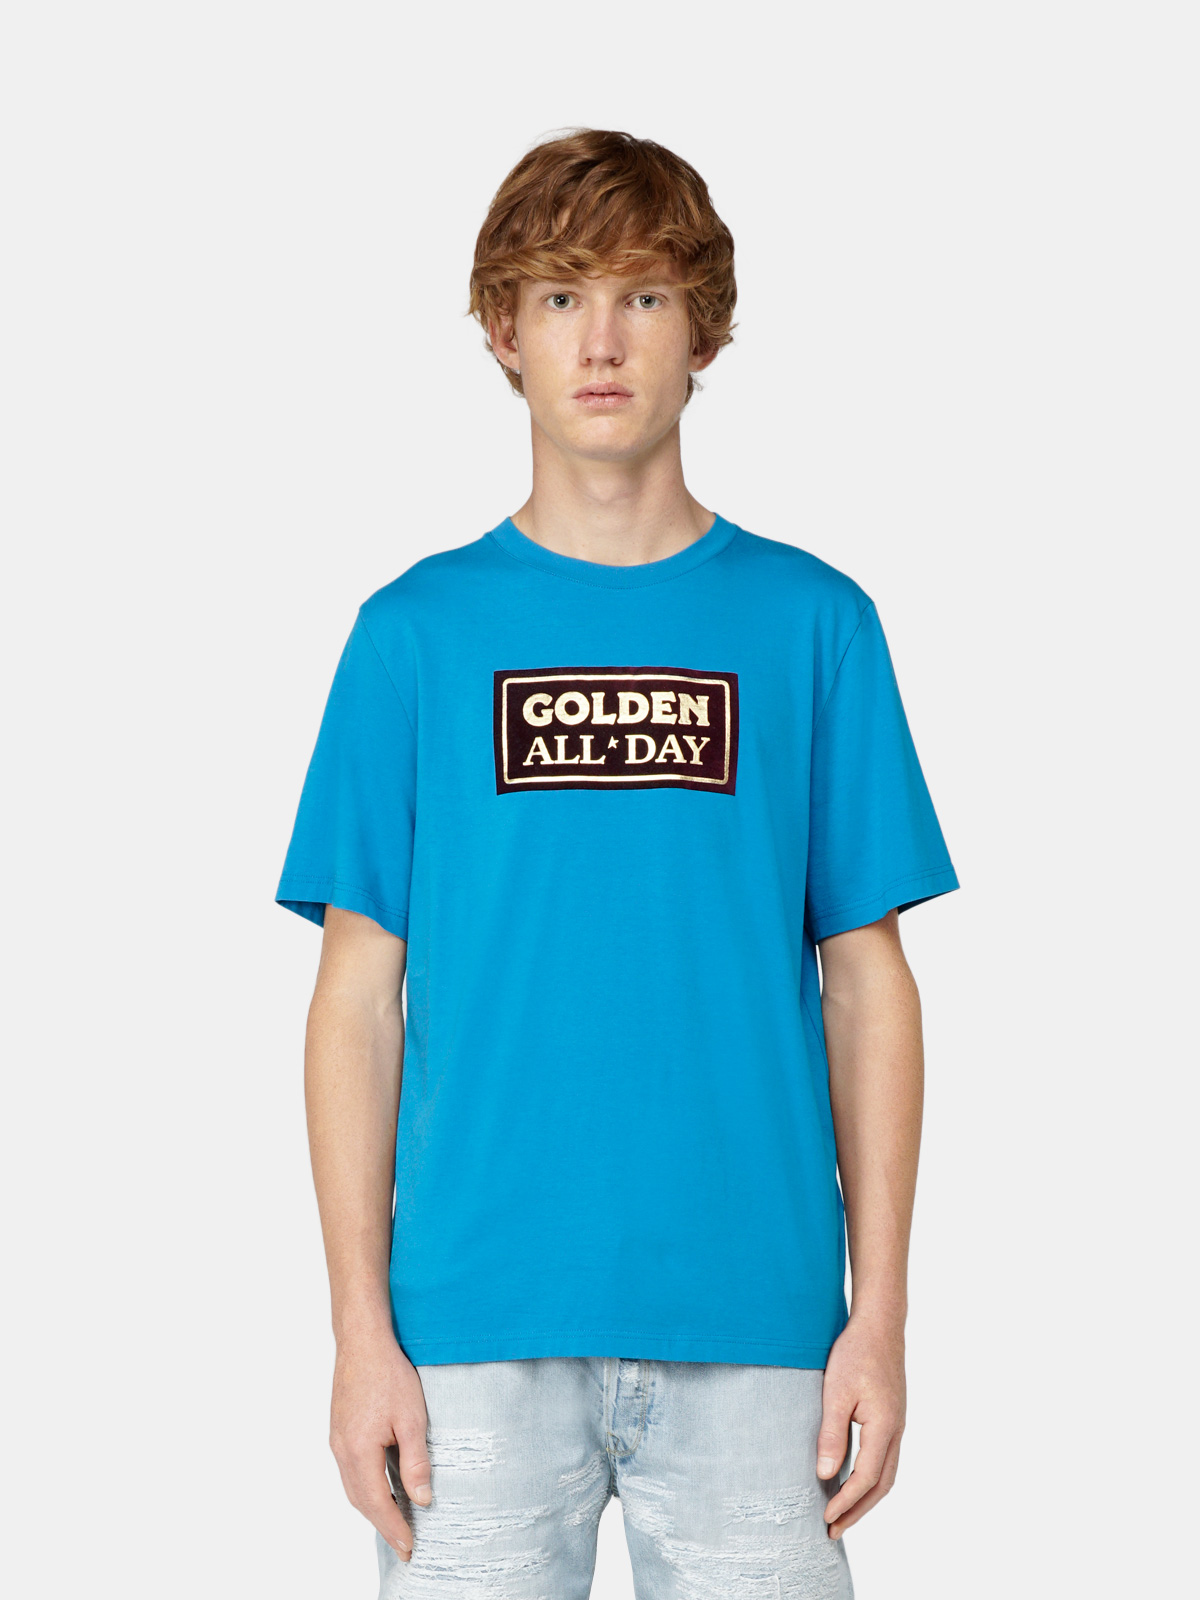 Golden Goose - Blue Adamo T-shirt with print on the front in